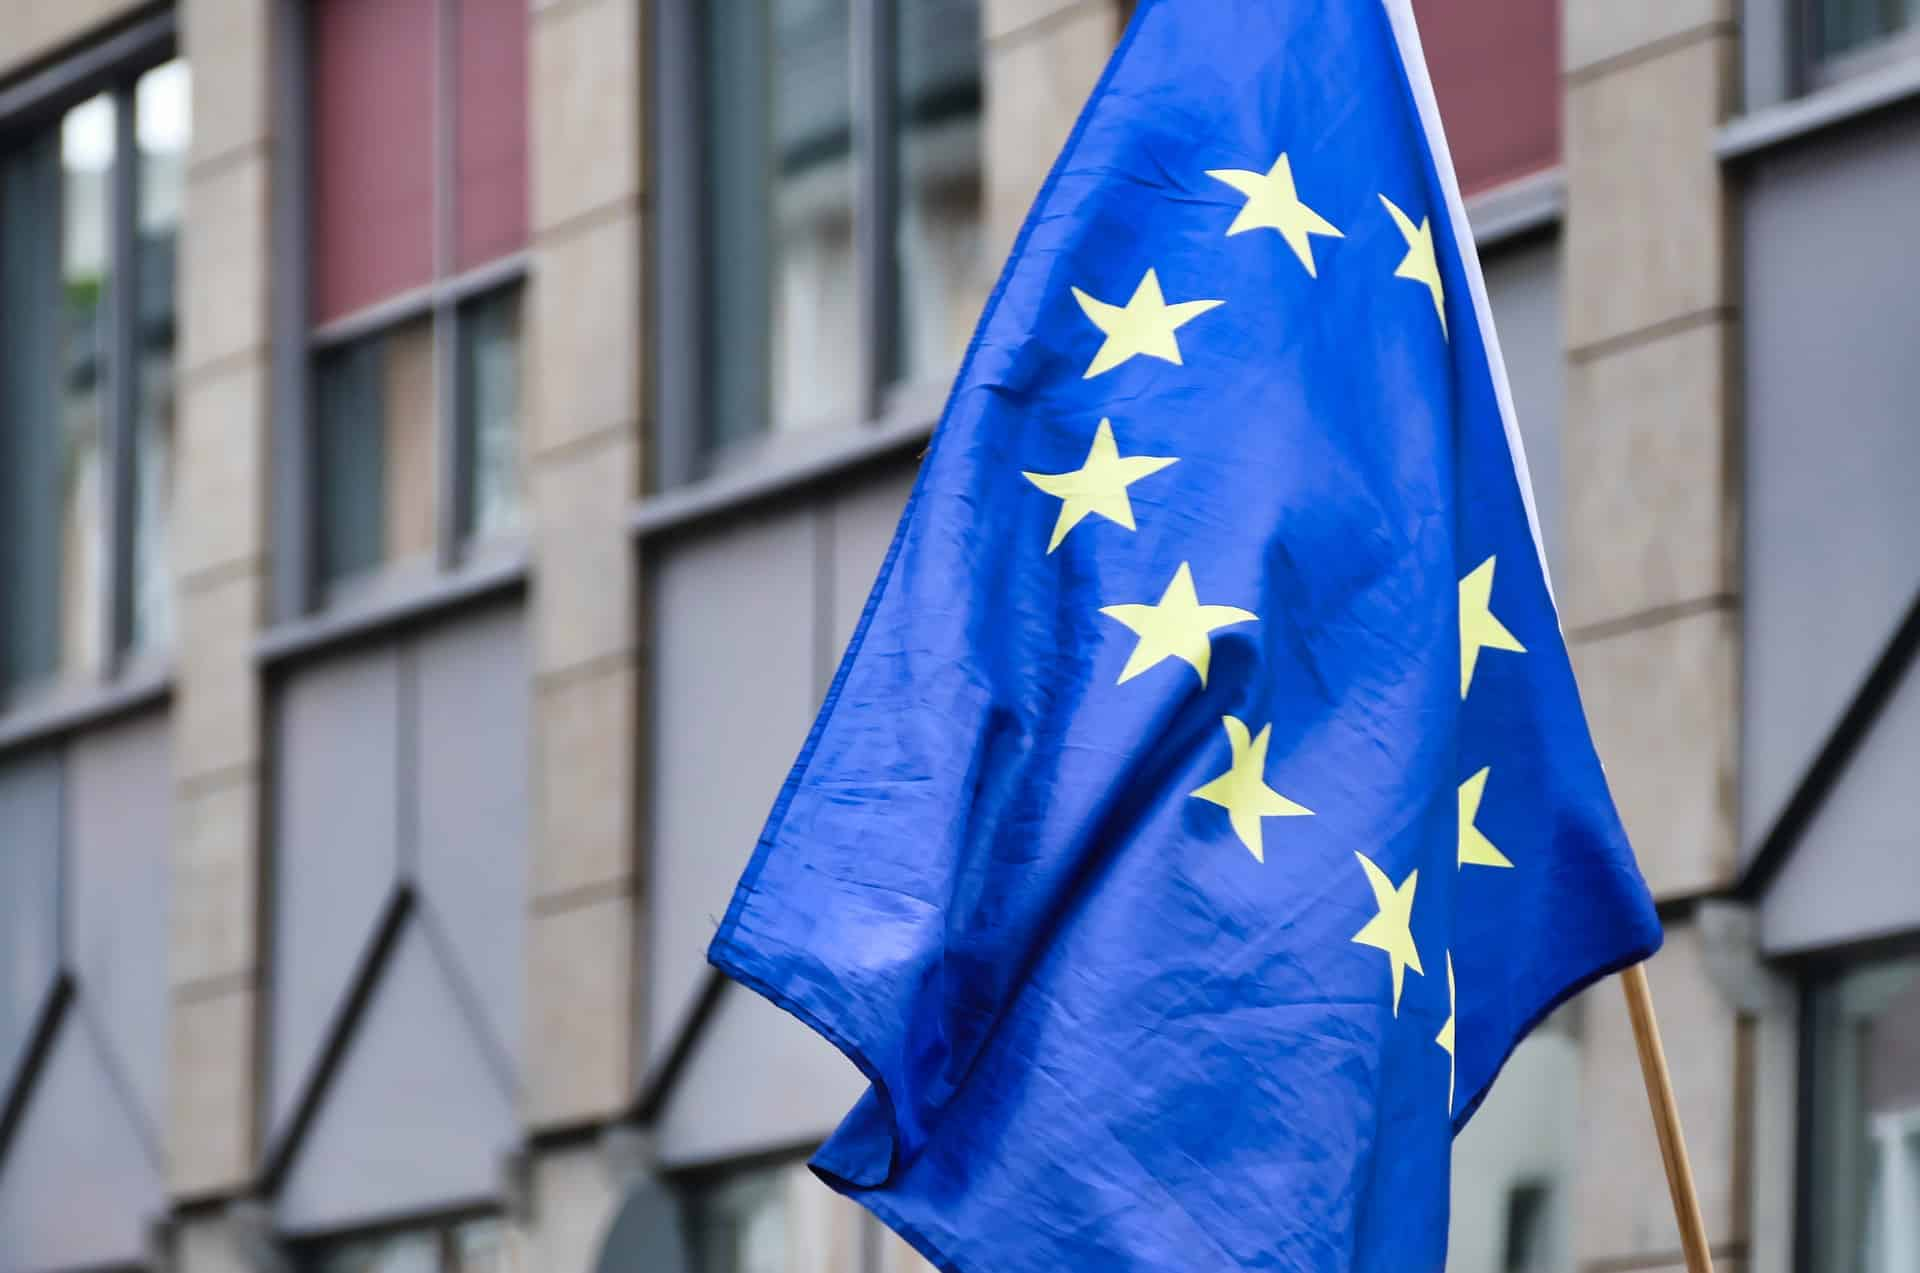 The EU's rules for responding to the dissemination of online terrorist content came into force